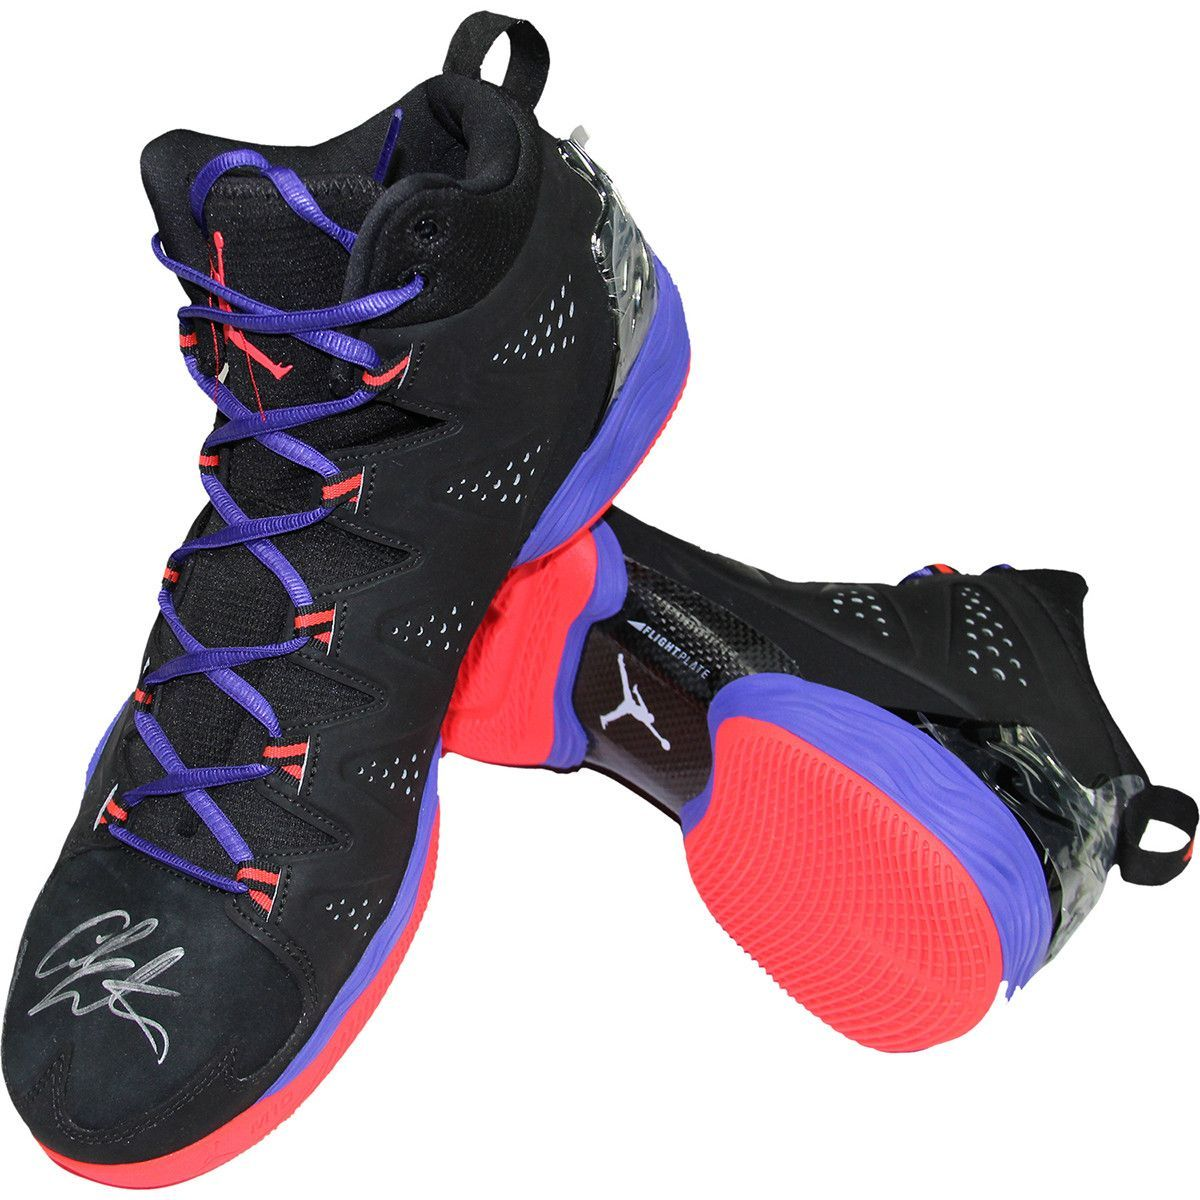 ... Carmelo Anthony Signed Right Shoe JORDAN MELO M10 Black/Red/ Dark  Concord Sneaker Pair ...